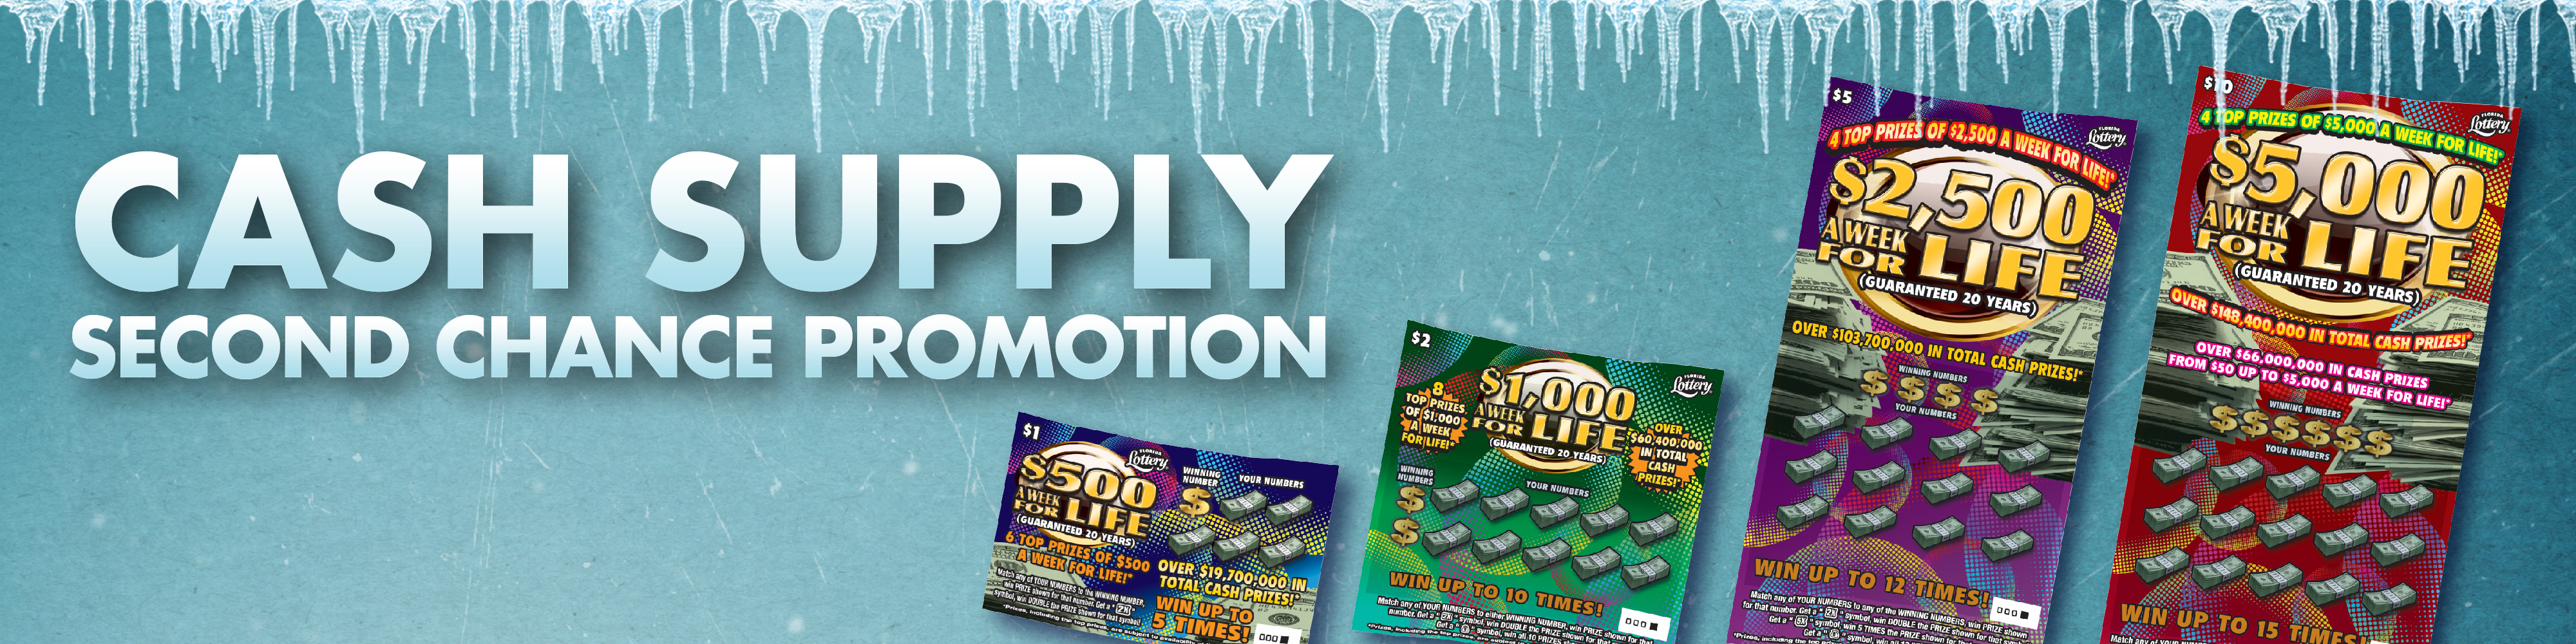 Cash Supply